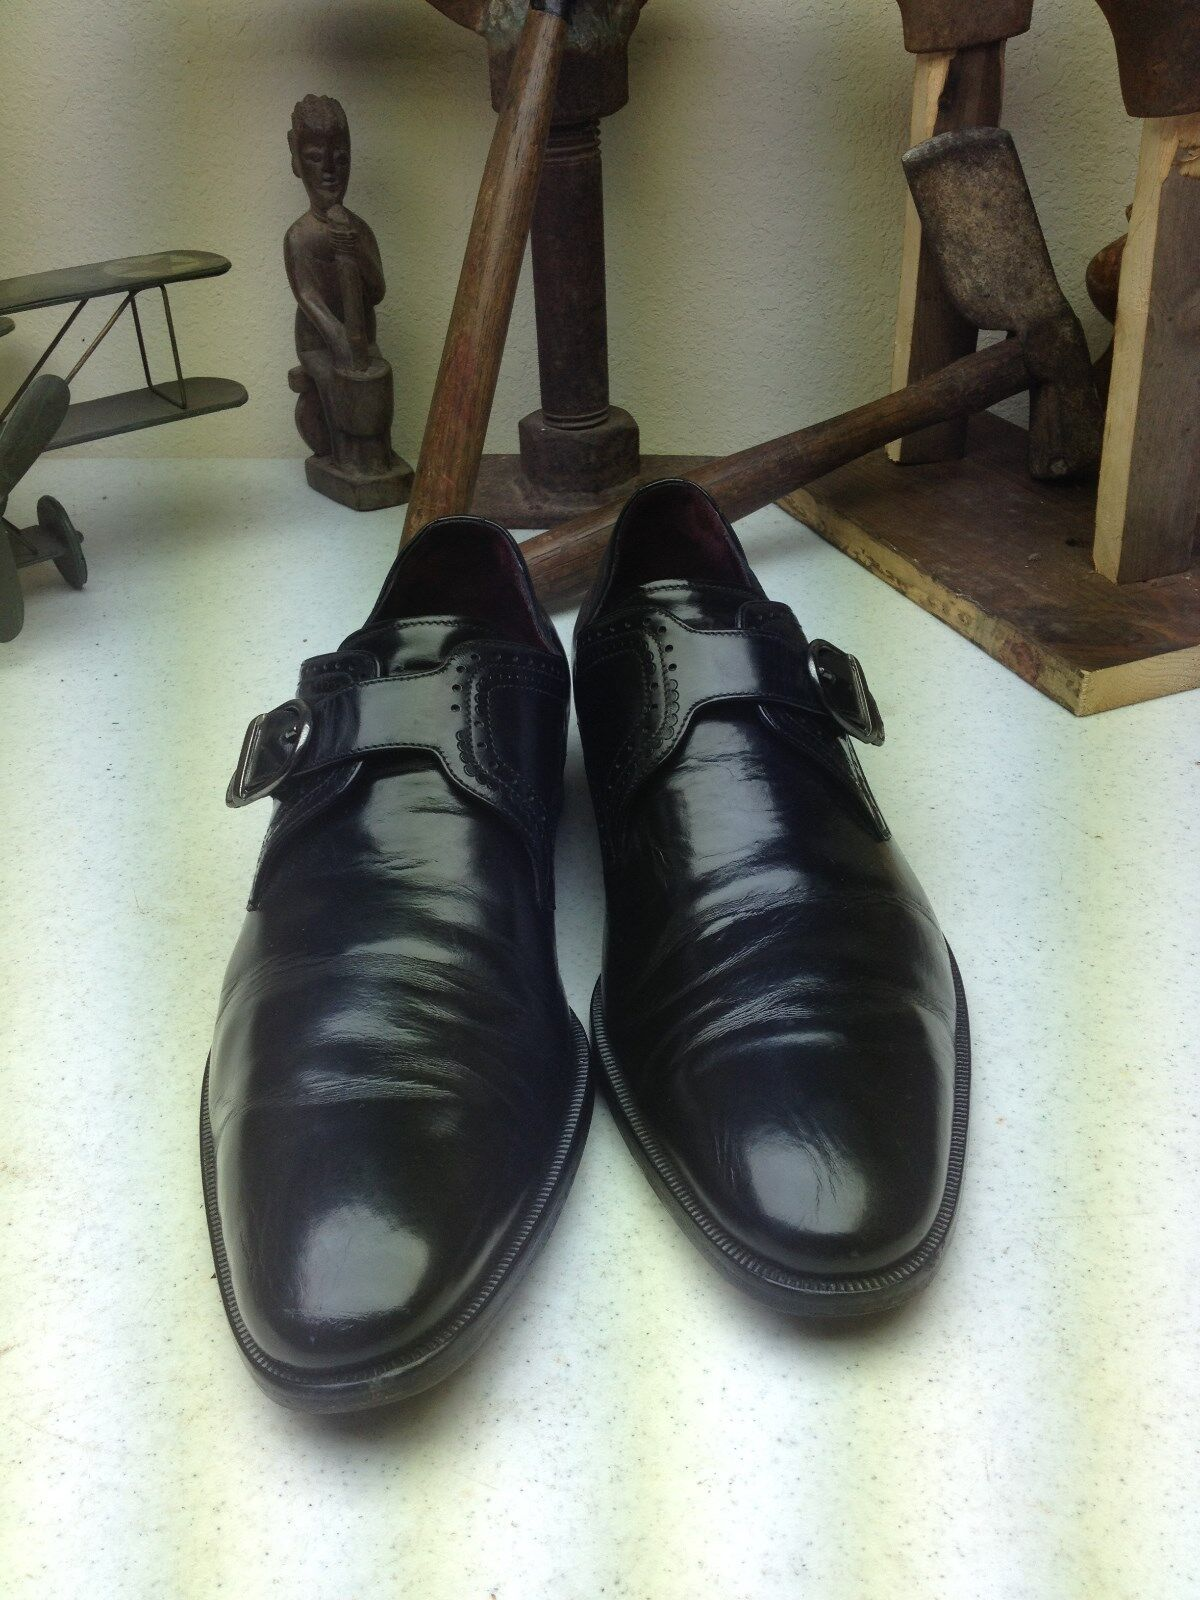 CLASSIC JOHNSTON & MURPHY HAND MADE IN ITALY ITALY ITALY LEATHER POWER BUSINESS schuhe 9.5 M 167651